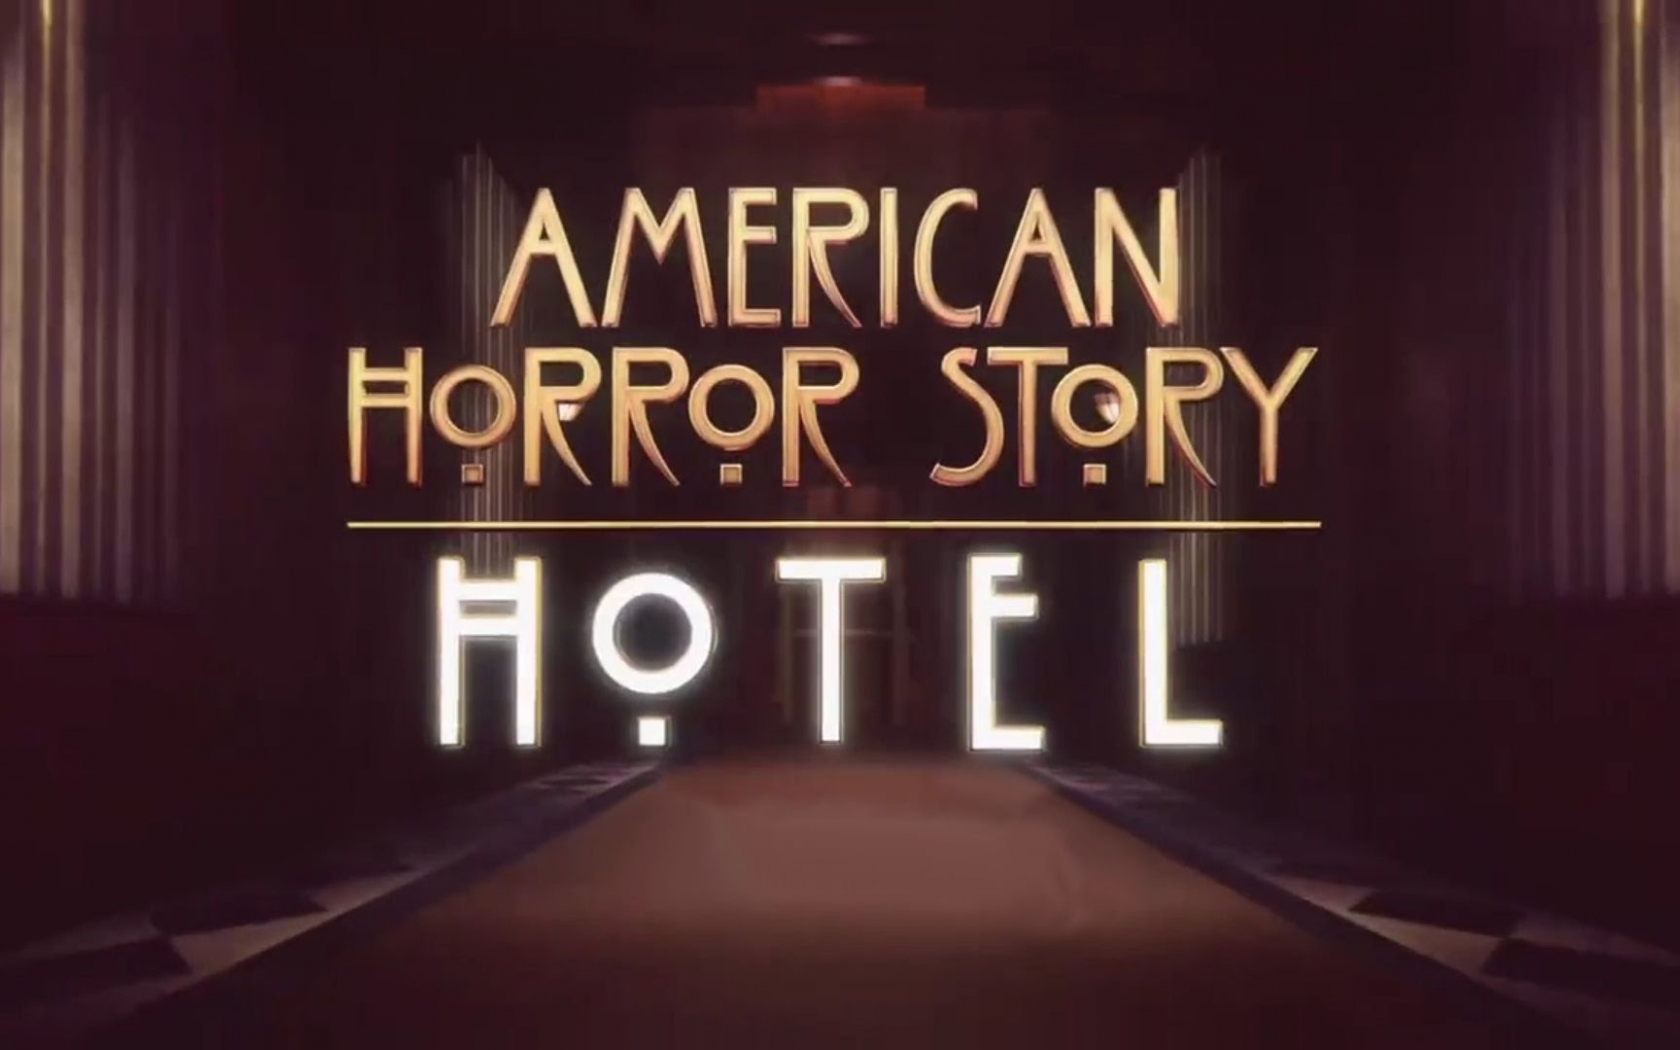 Free Download American Horror Story Hotel Wallpapers High